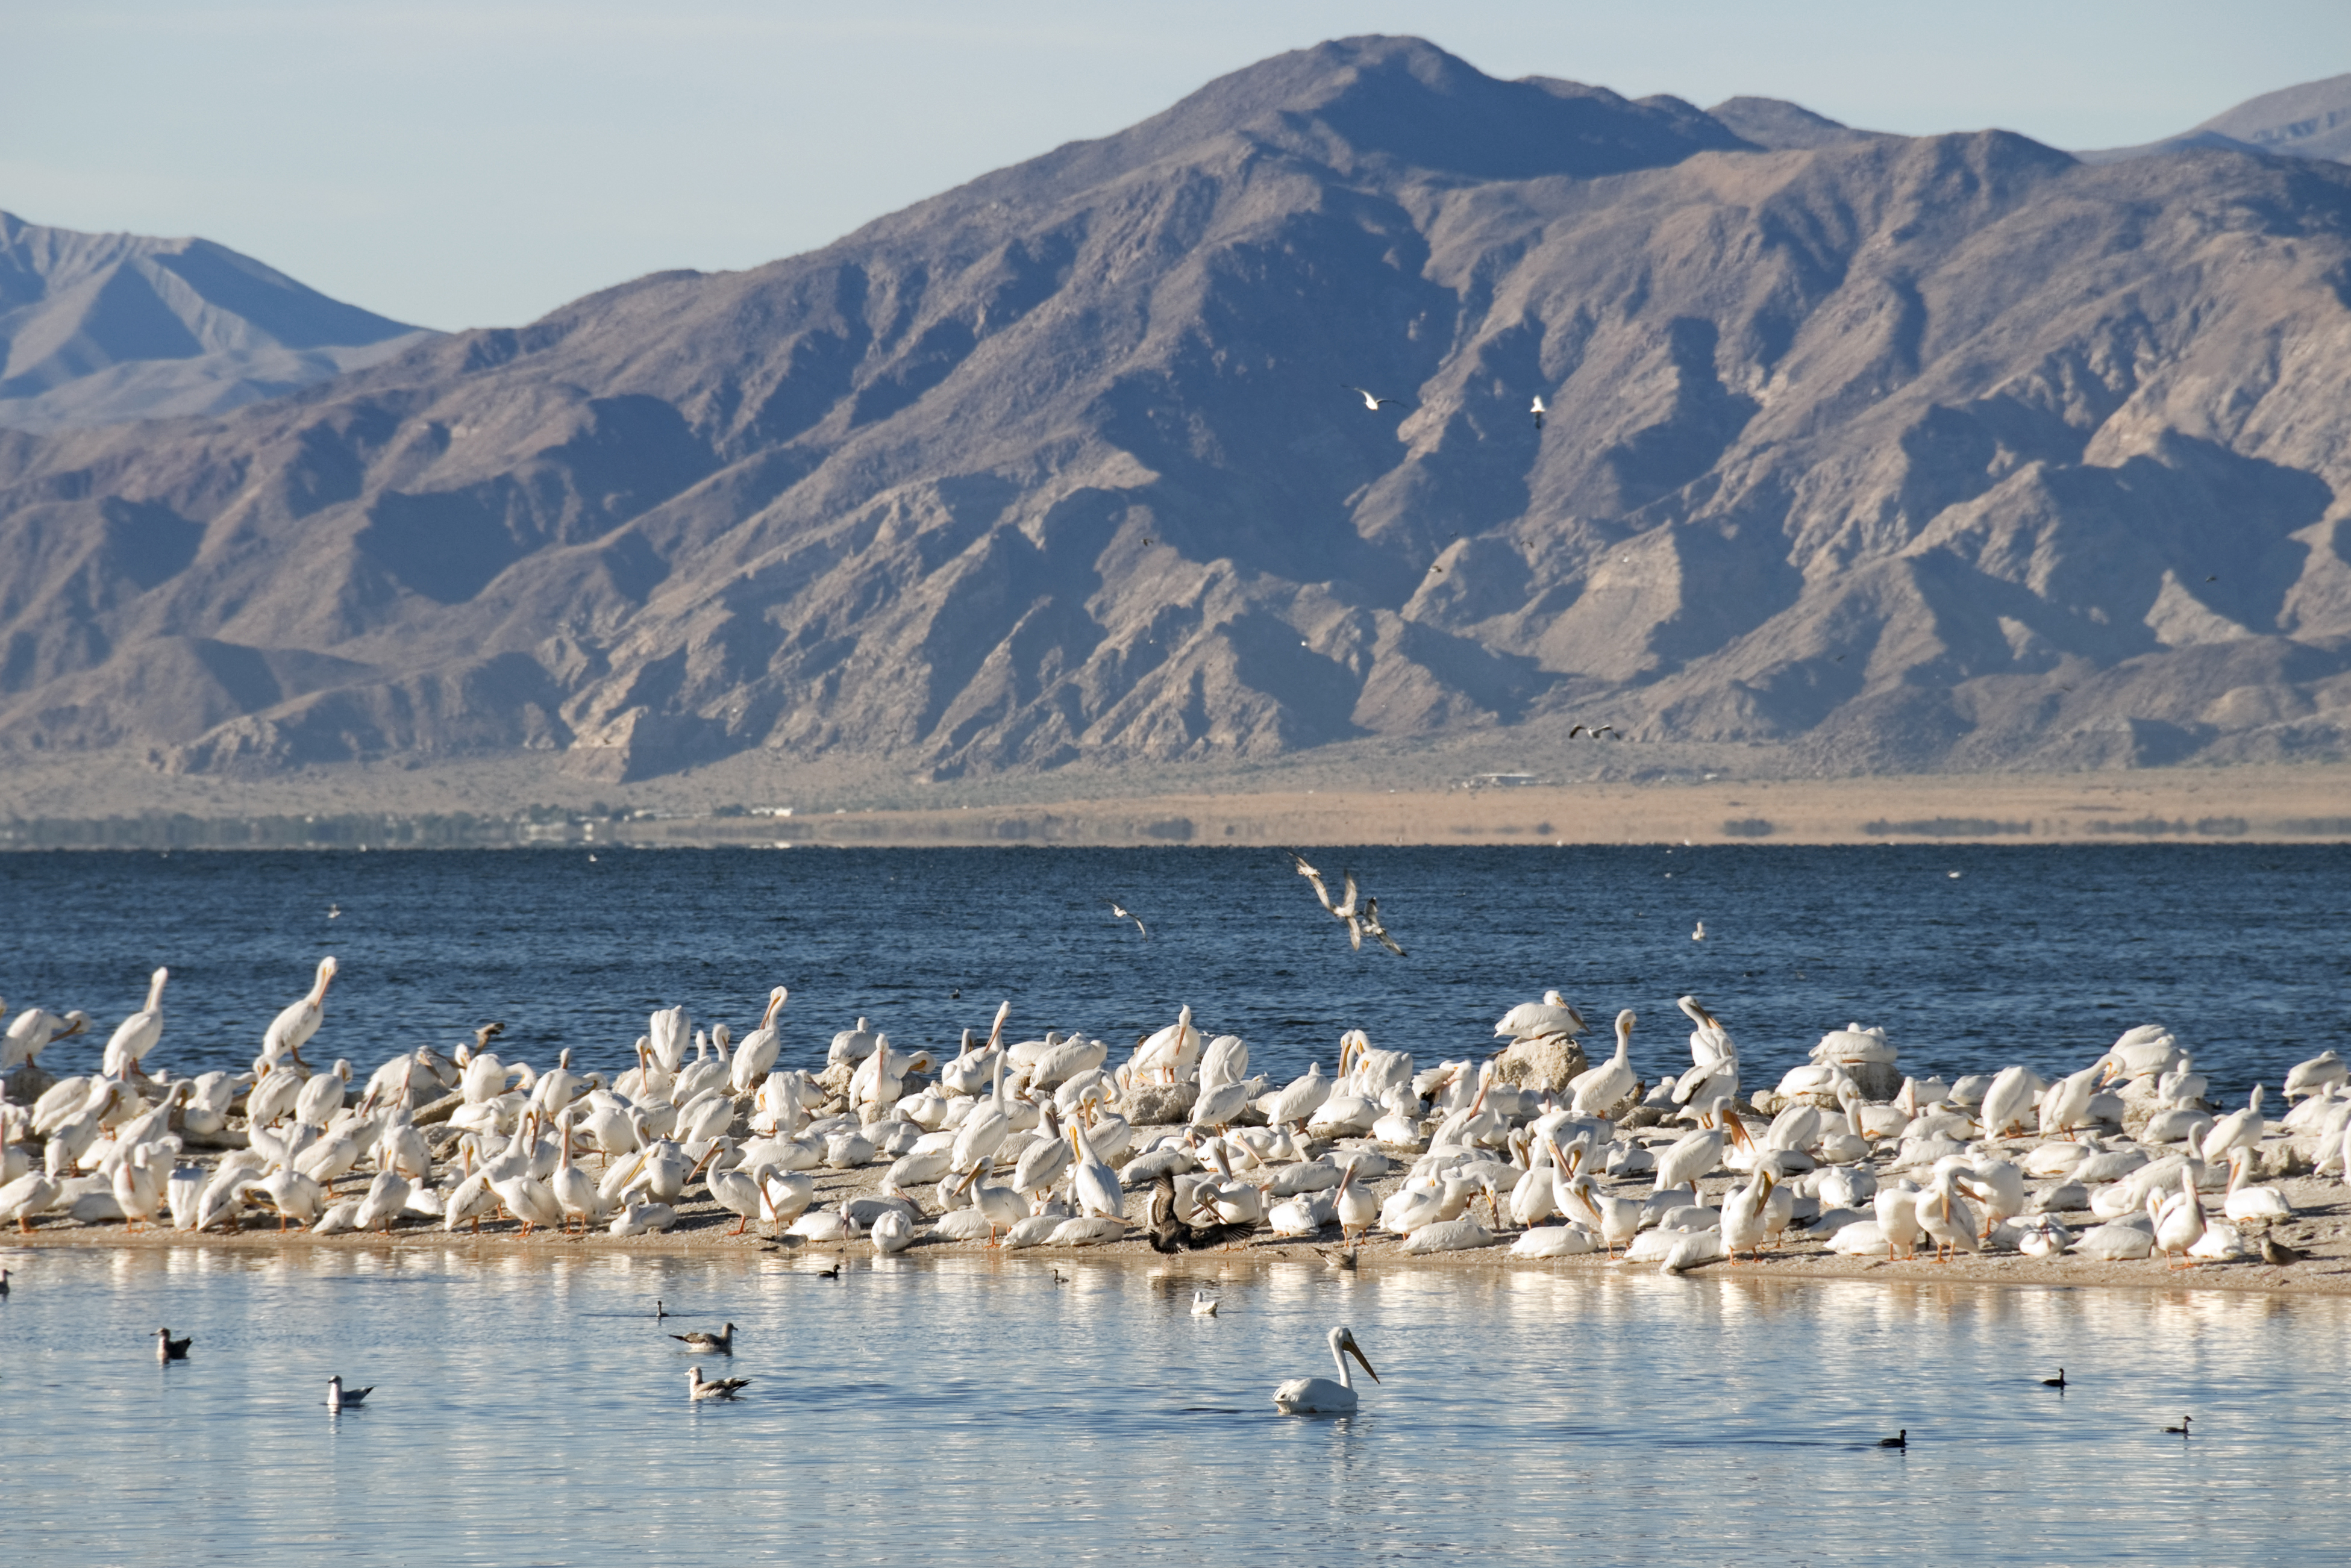 Salton Sea (iStock, photo copyright Phil Augustavo)